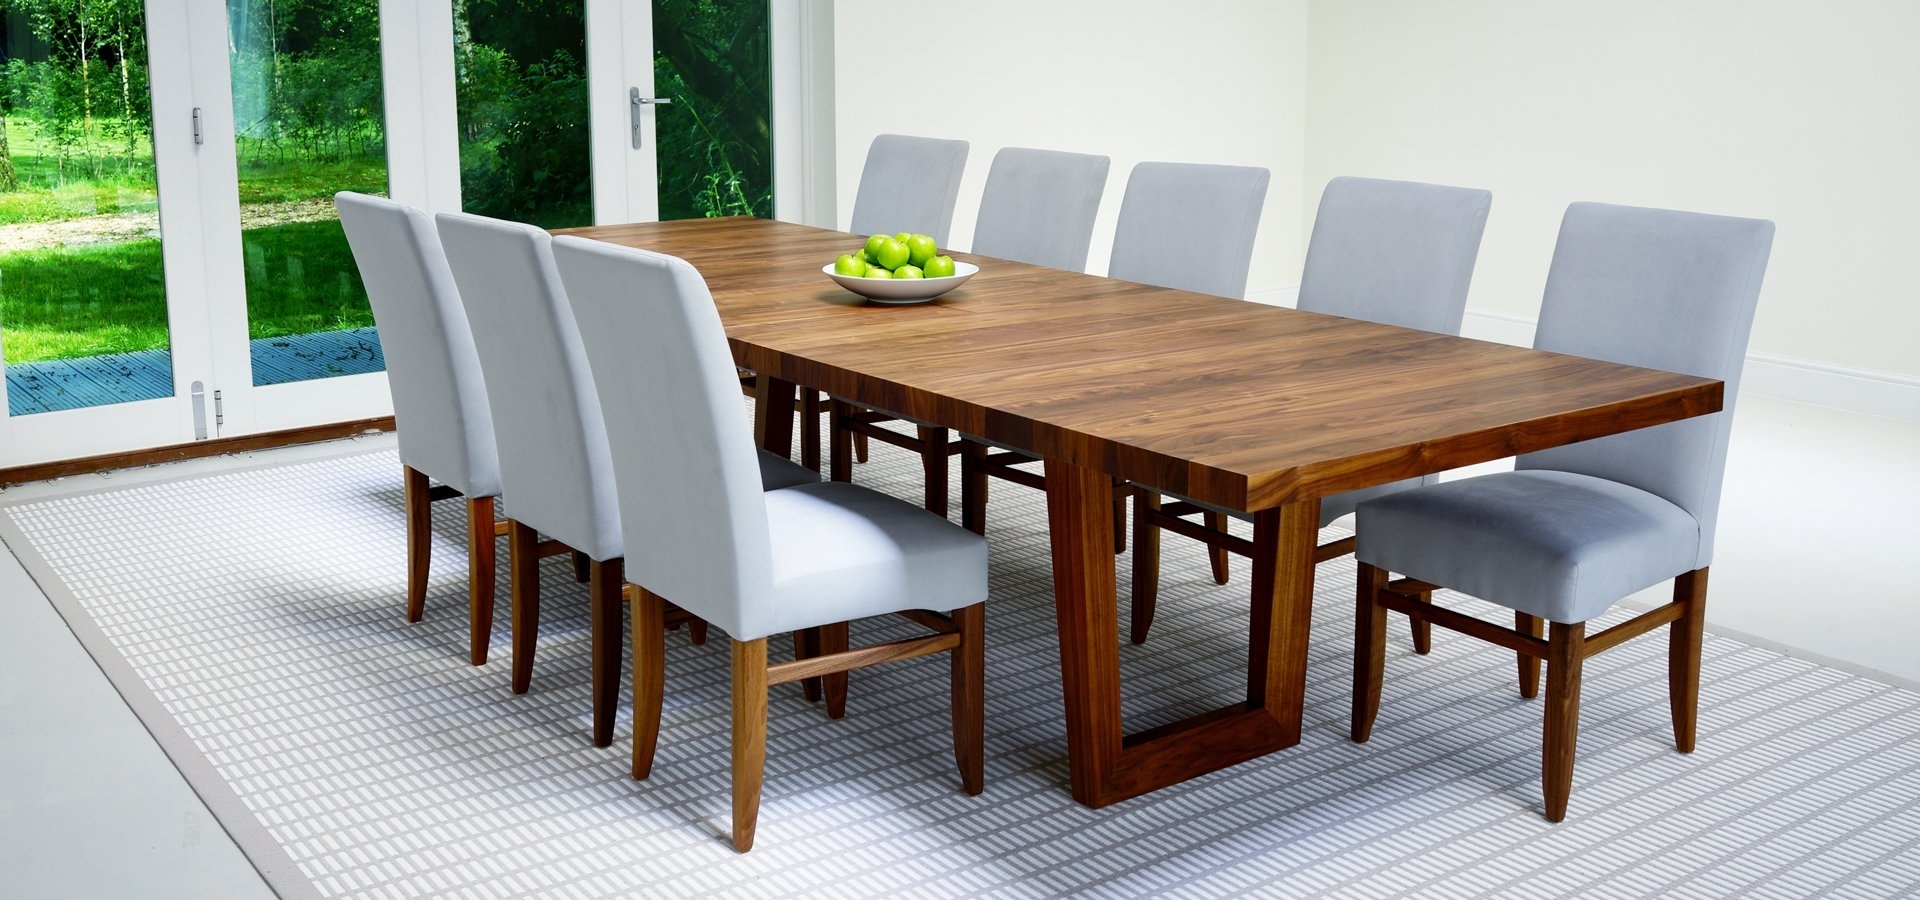 Fashionable Contemporary Dining Tables & Furnitureberrydesign (View 8 of 25)